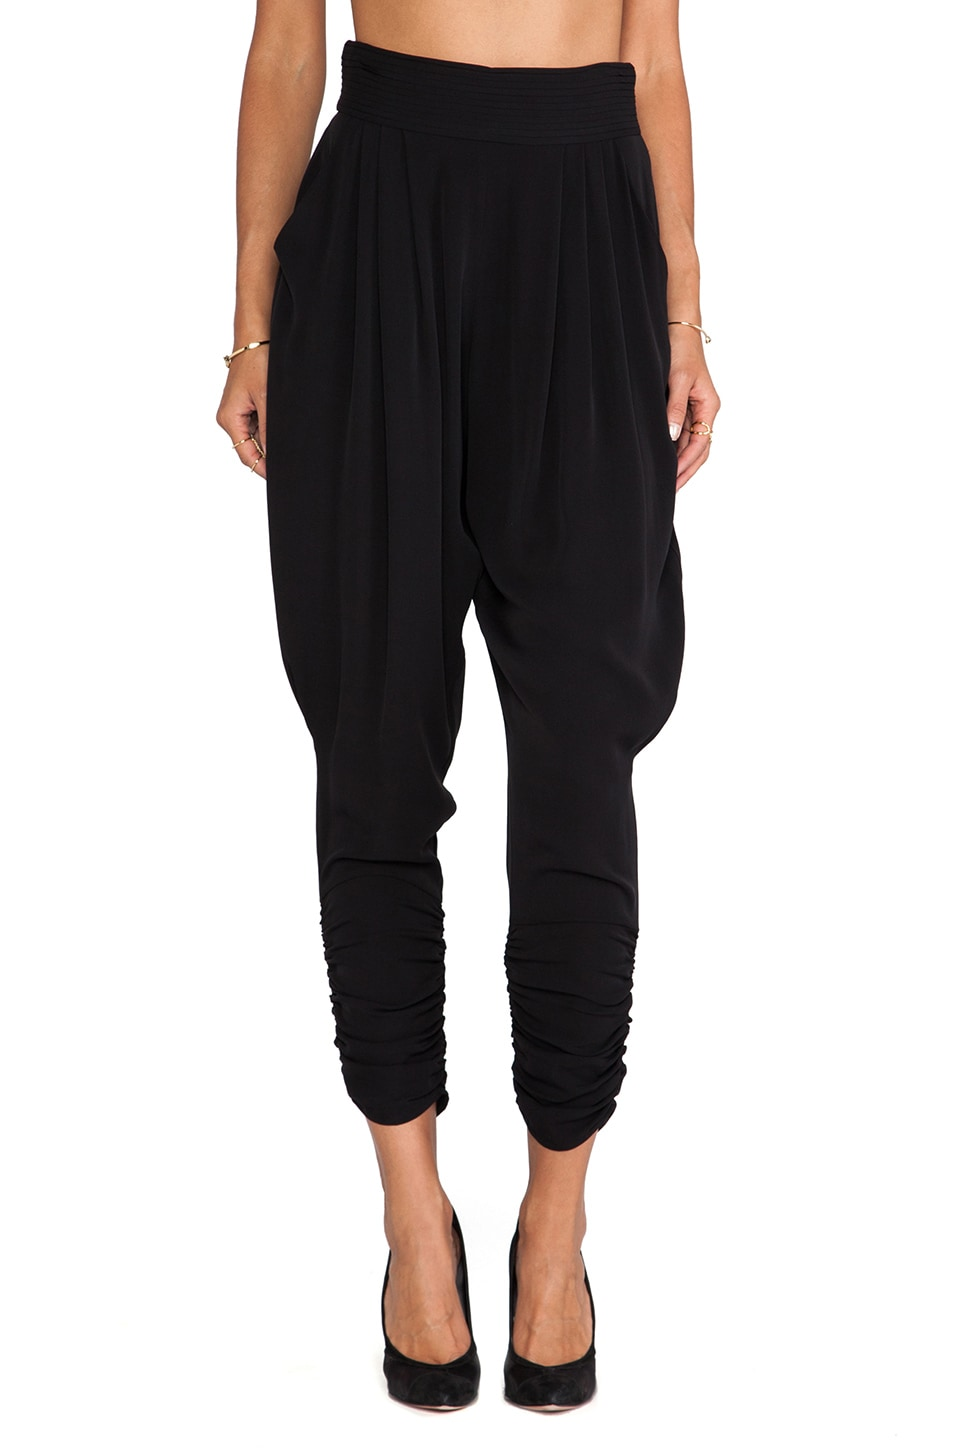 Catherine Malandrino Gisella Draw String Harem Pants in Noir